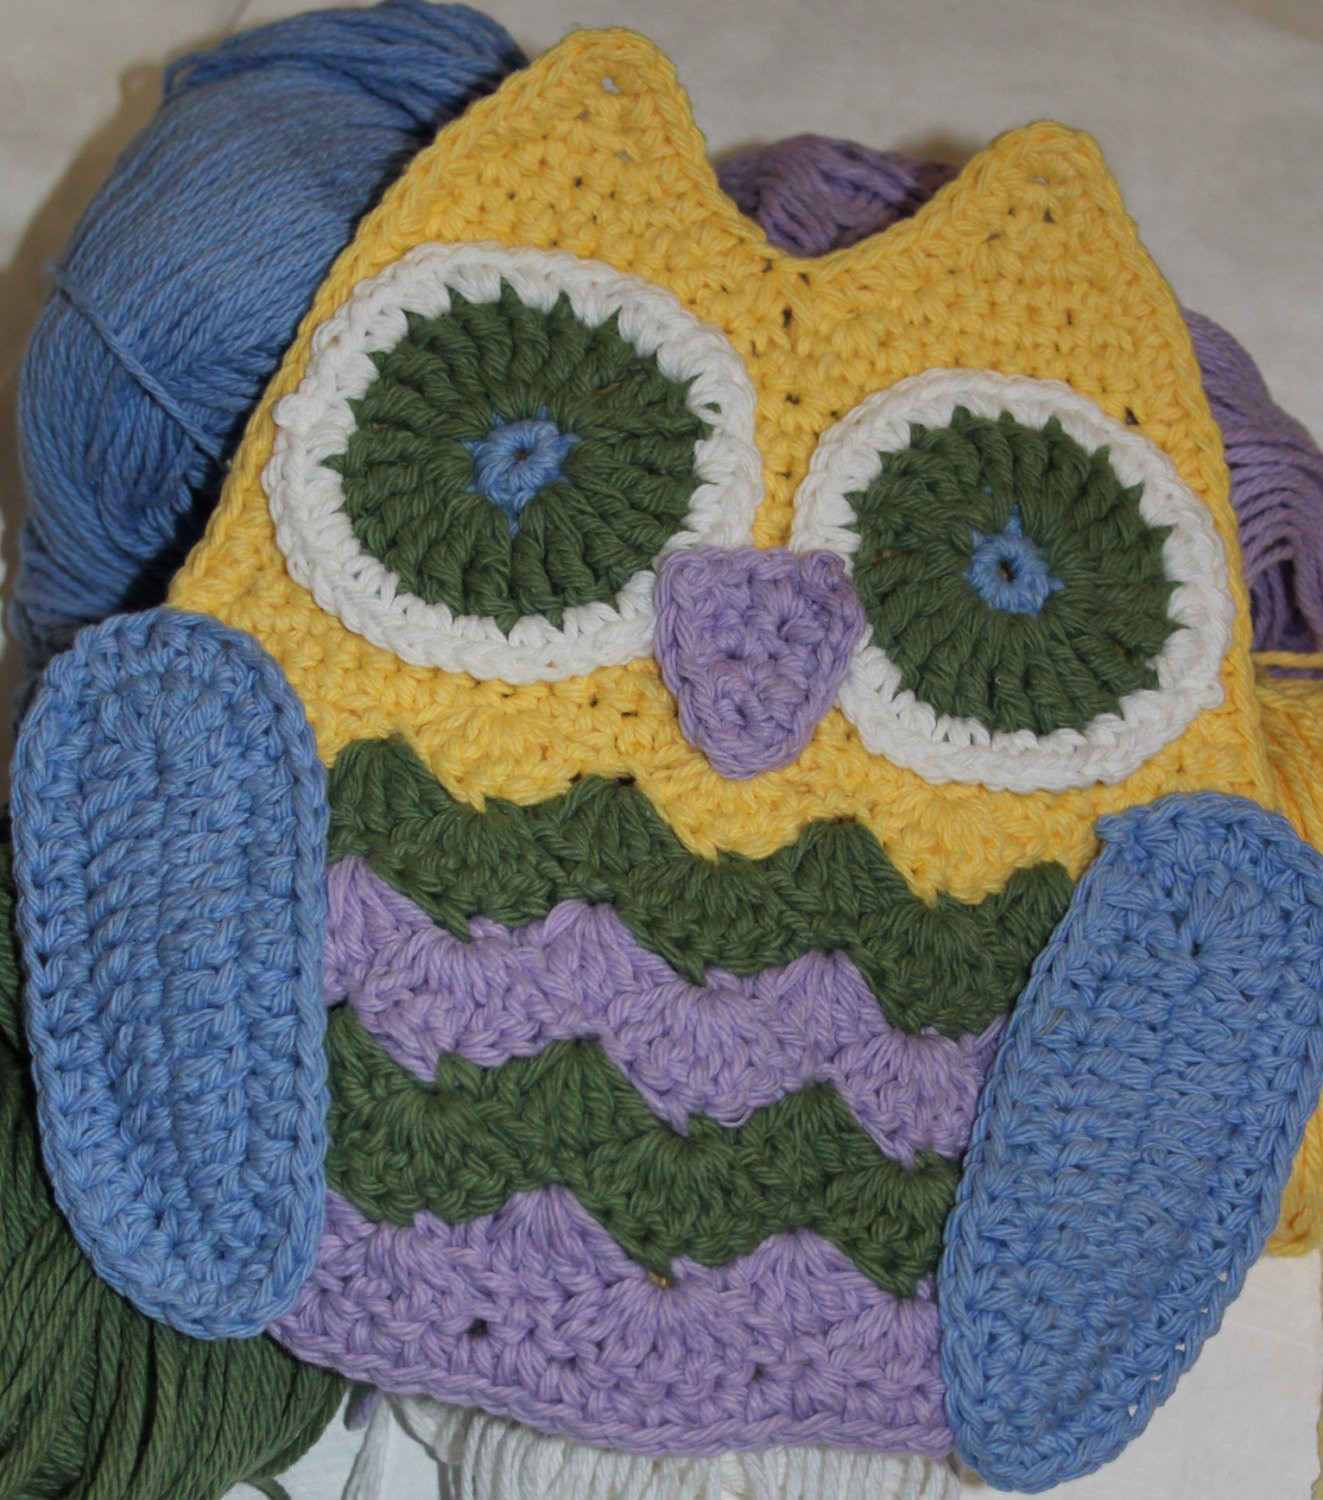 Crochet Potholder Pattern Fresh Owl Hot Pad Potholder Crochet Pattern Of Amazing 43 Pictures Crochet Potholder Pattern